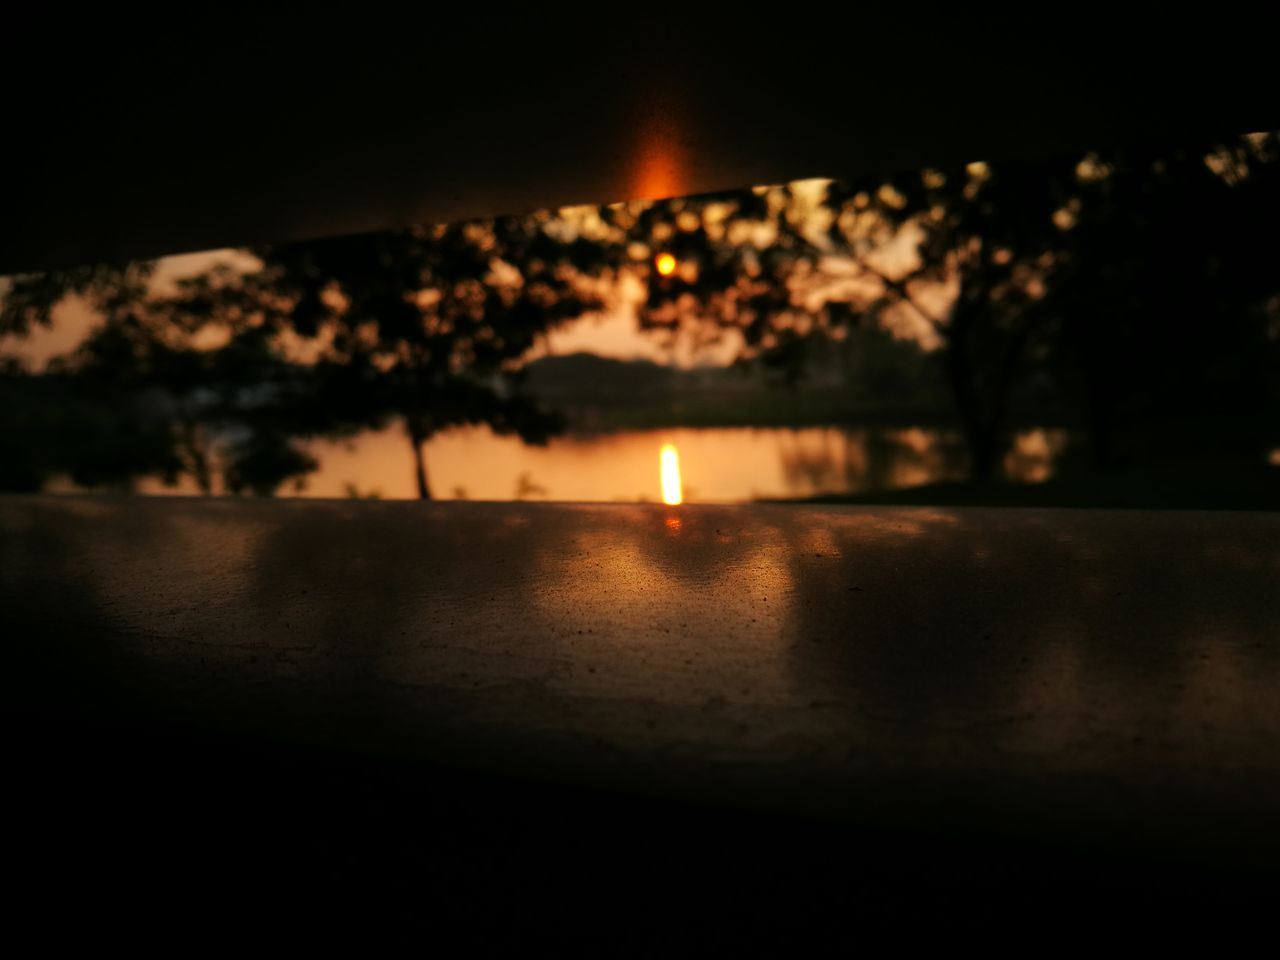 night, burning, no people, flame, illuminated, water, sunset, tranquility, outdoors, sky, scenics, nature, beauty in nature, close-up, diya - oil lamp